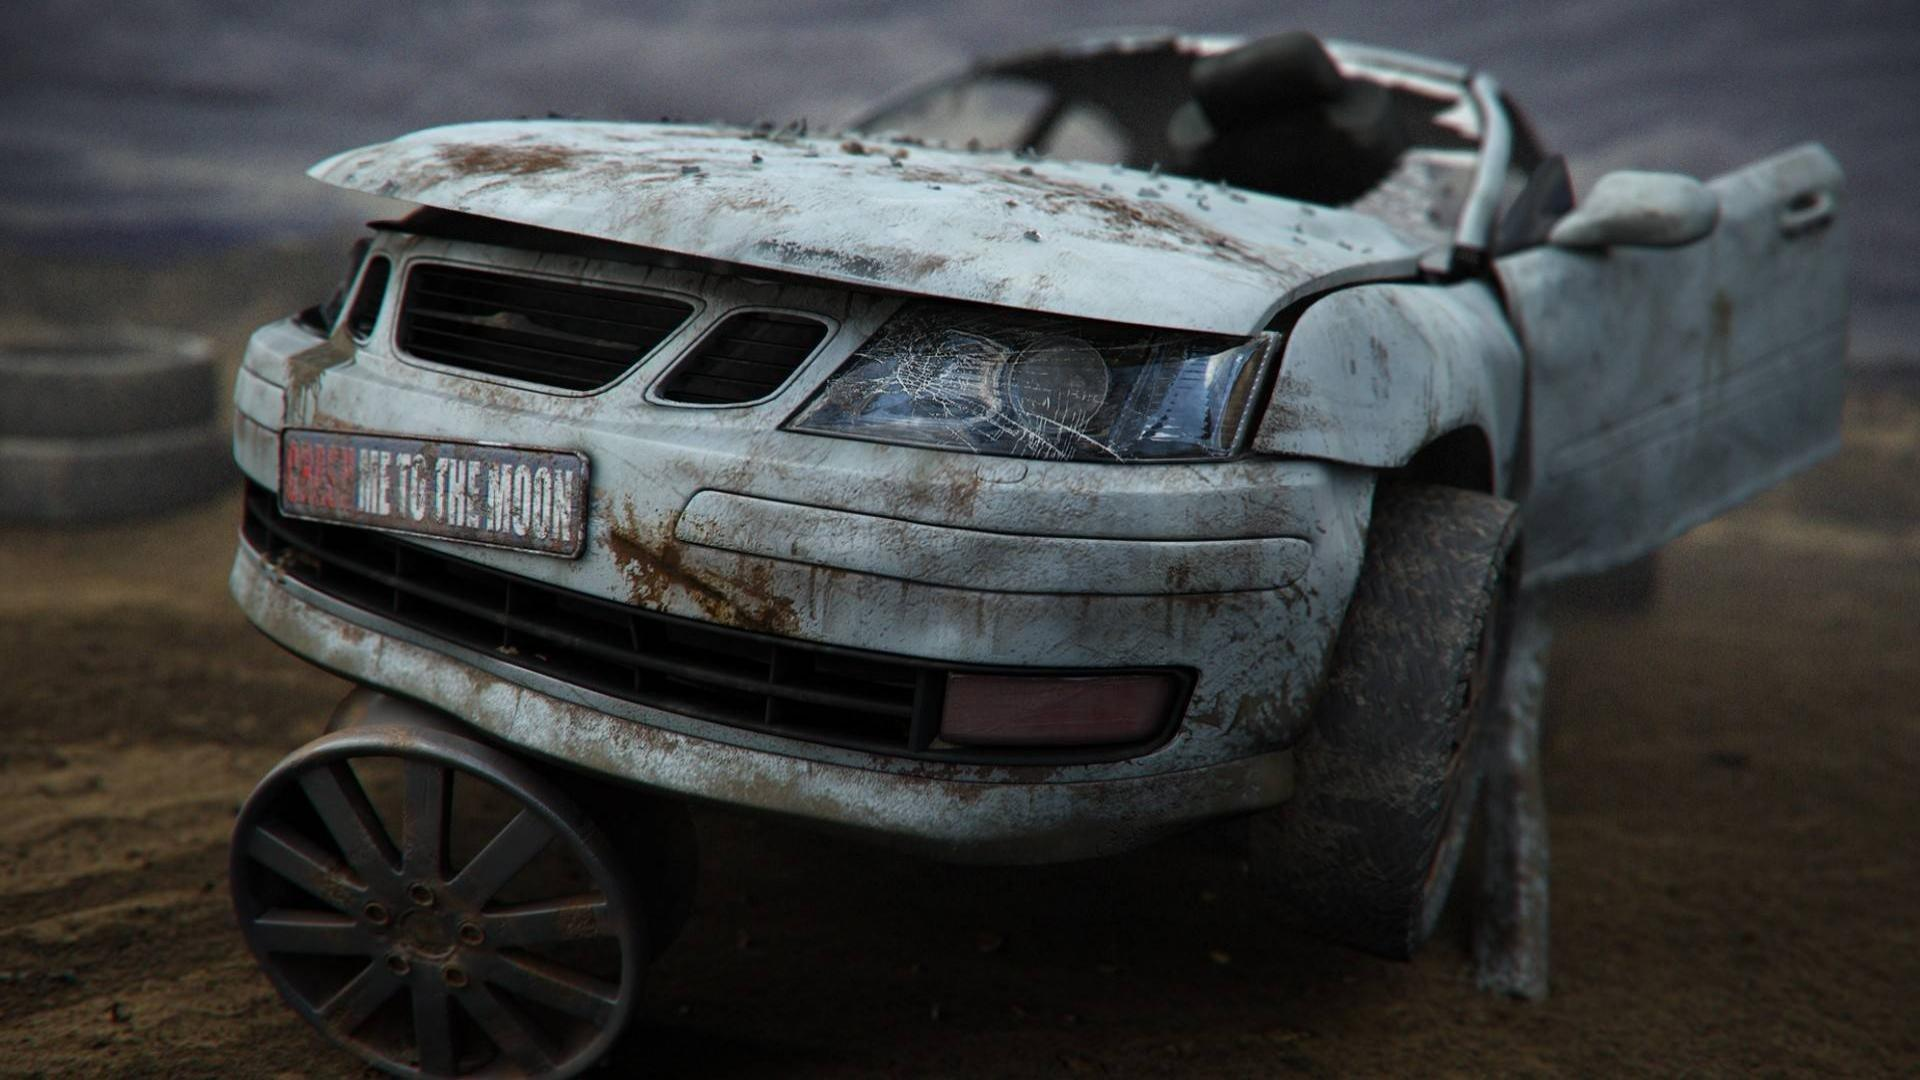 Saab wallpapers 1920x1080 Full HD